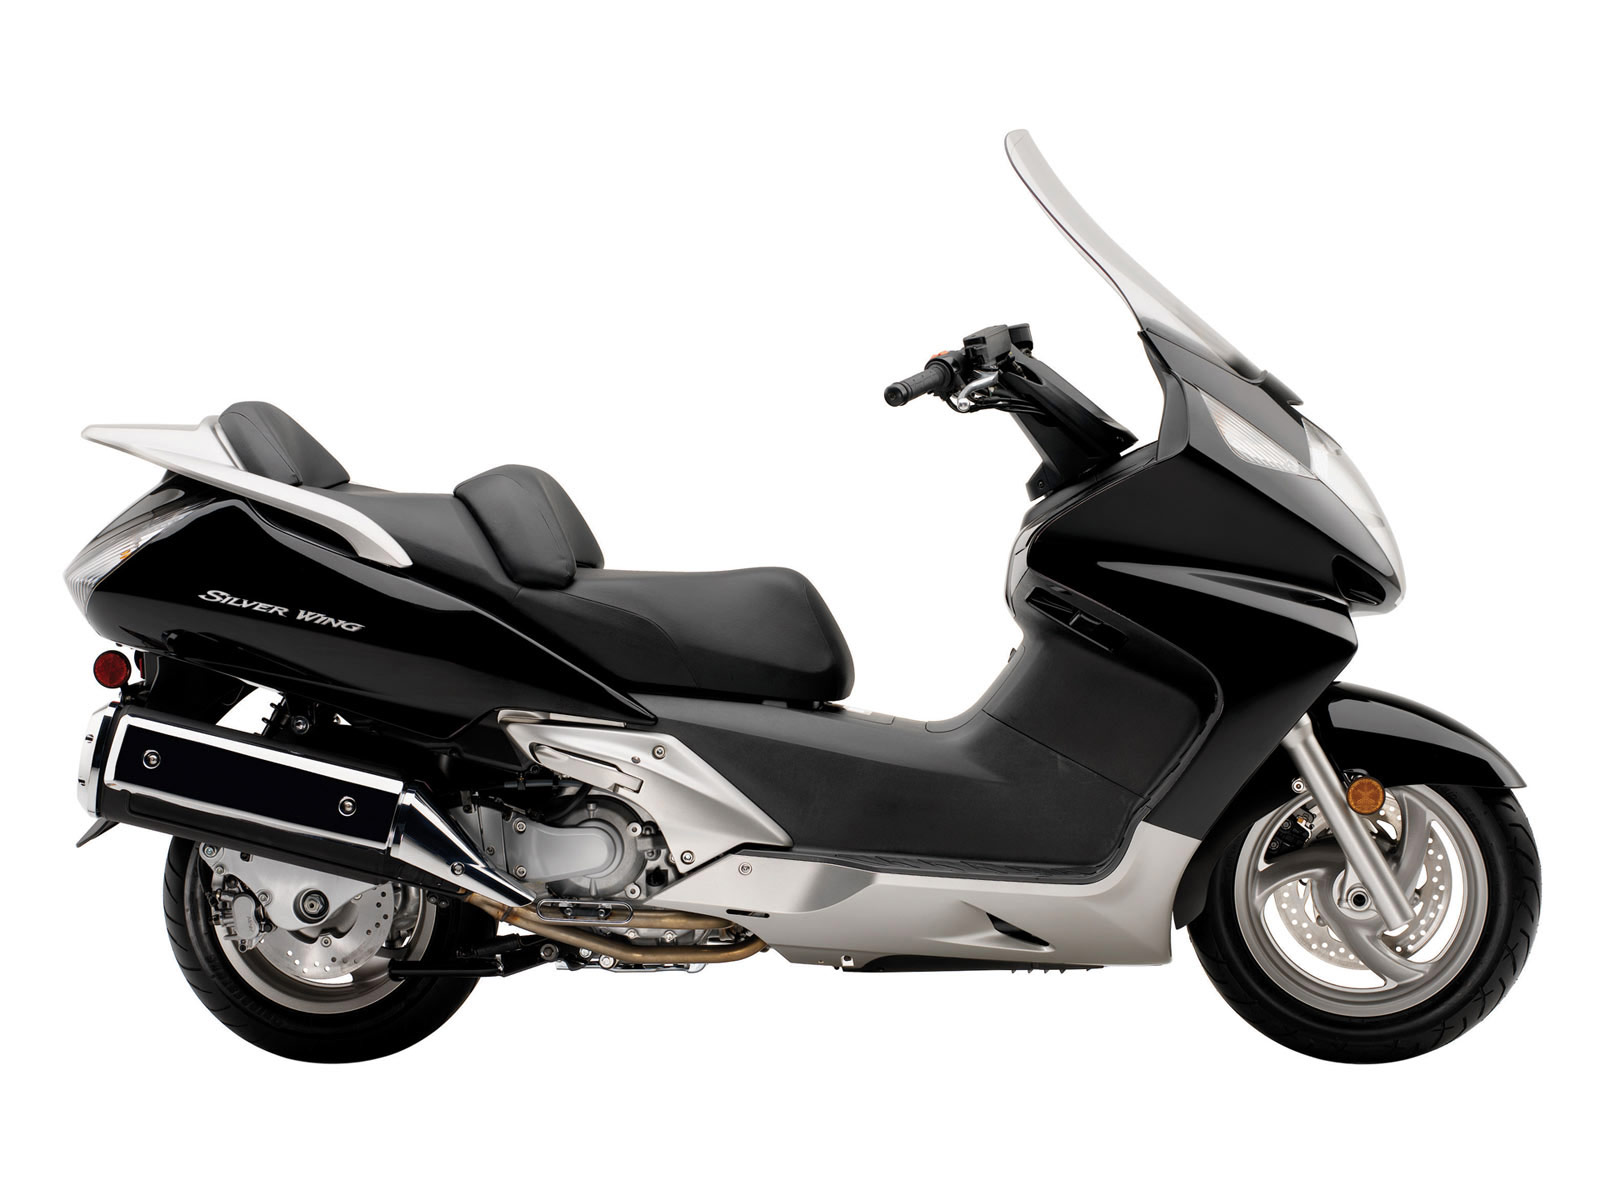 2005 Honda Silver Wing Scooter Pictures Accident Lawyers